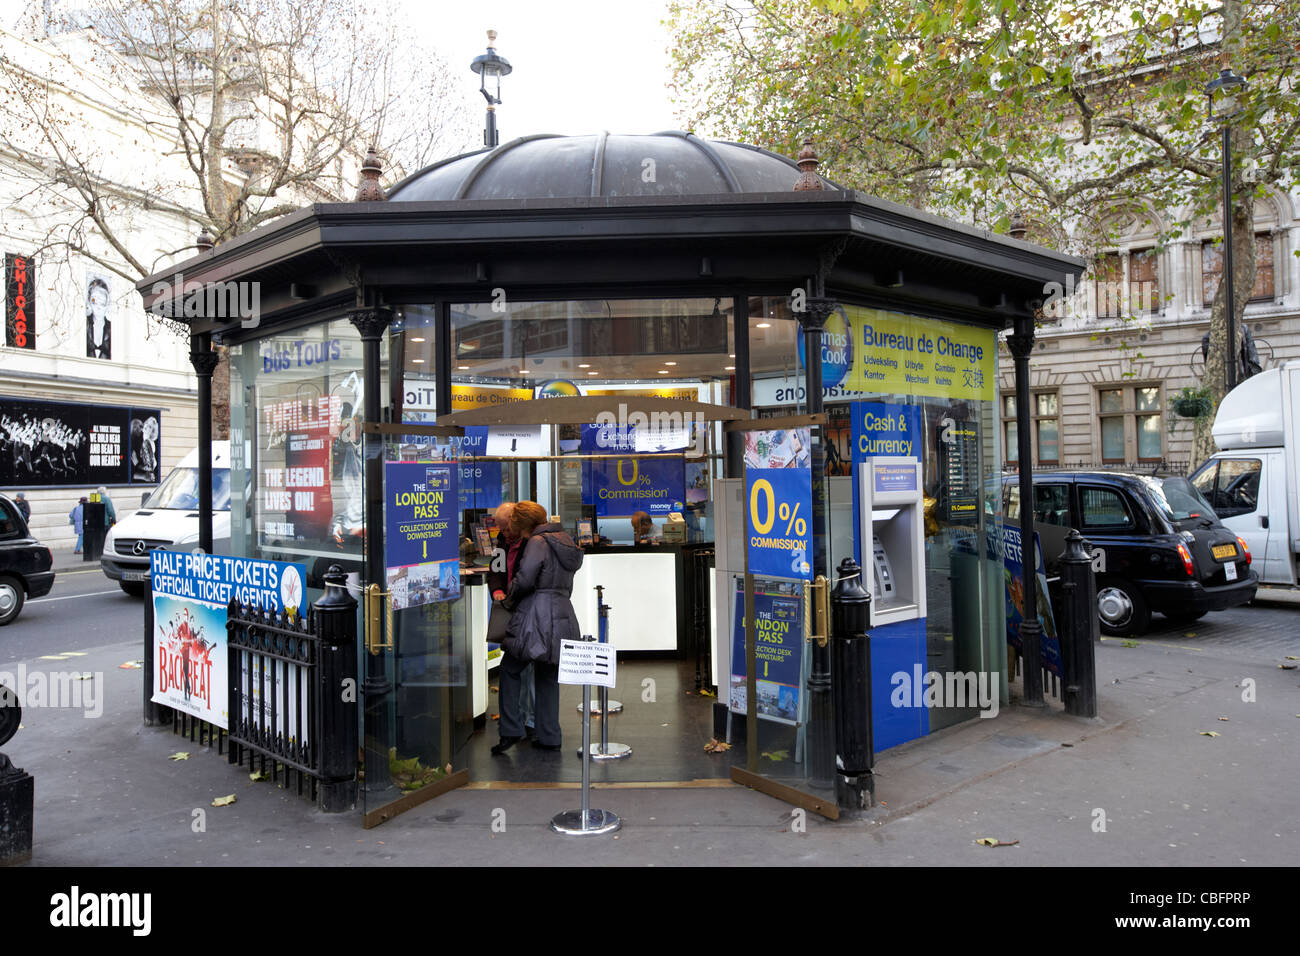 bureau de change tour bookings and theatre booking office in theatreland west end london england uk united kingdom